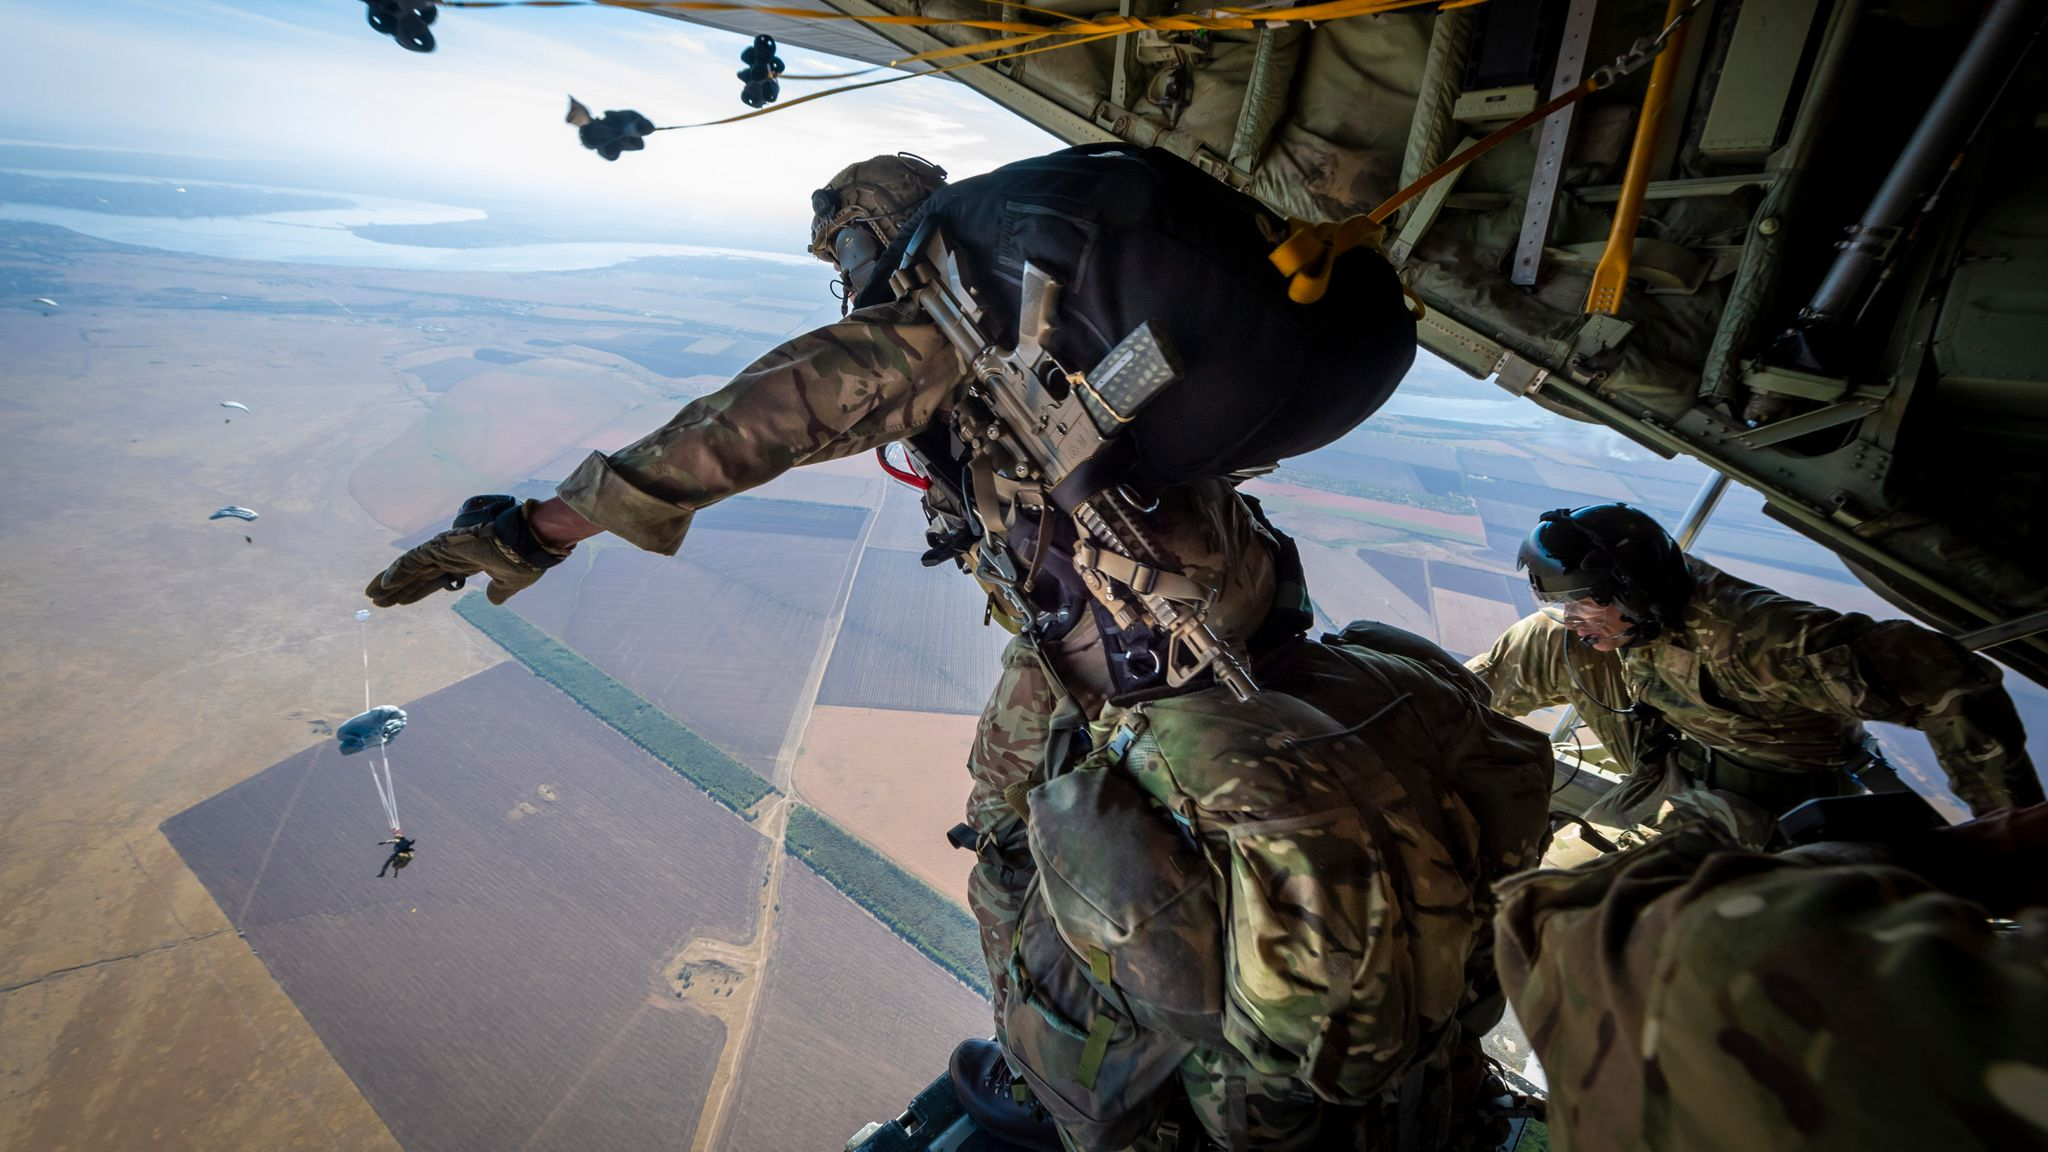 British troops perform largest parachute drop for decades 'to show  solidarity' with Ukraine   UK News   Sky News